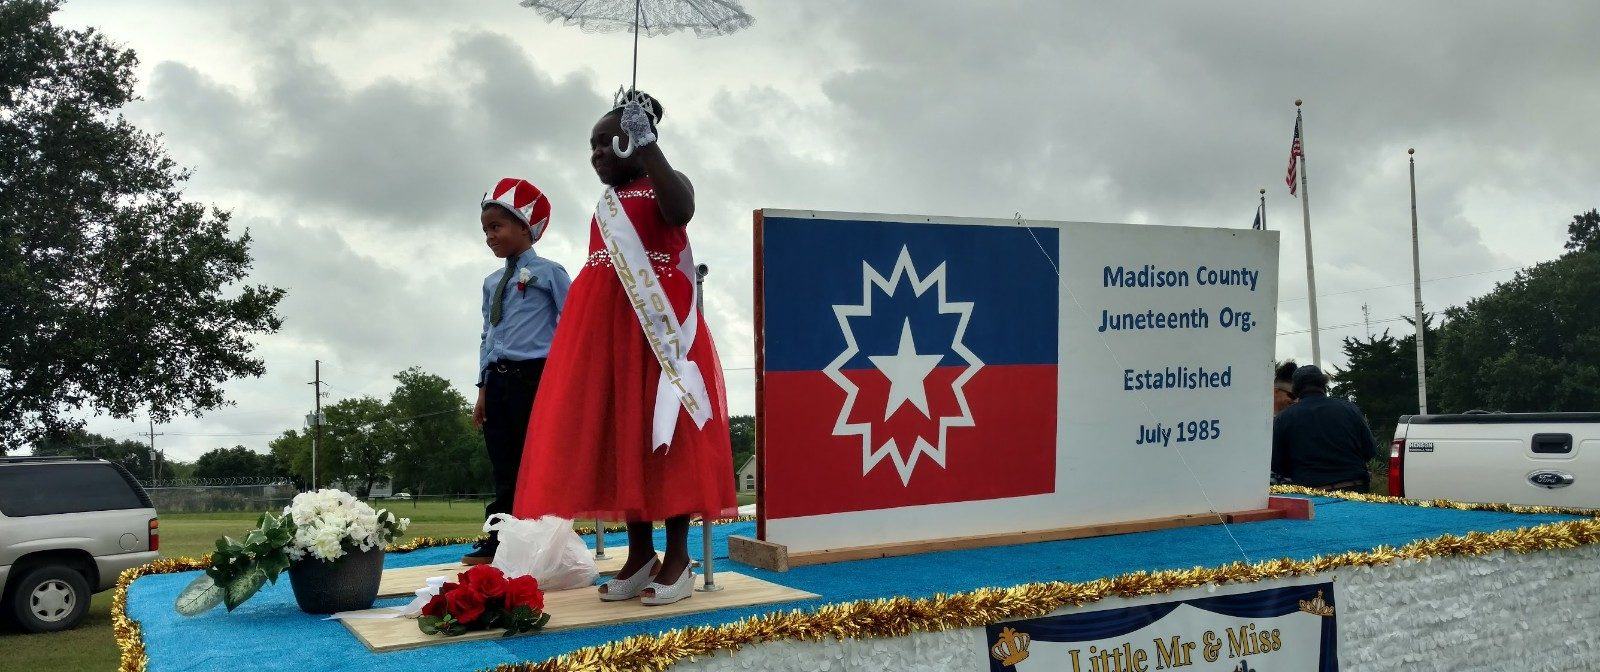 Madison County Juneteenth Parade